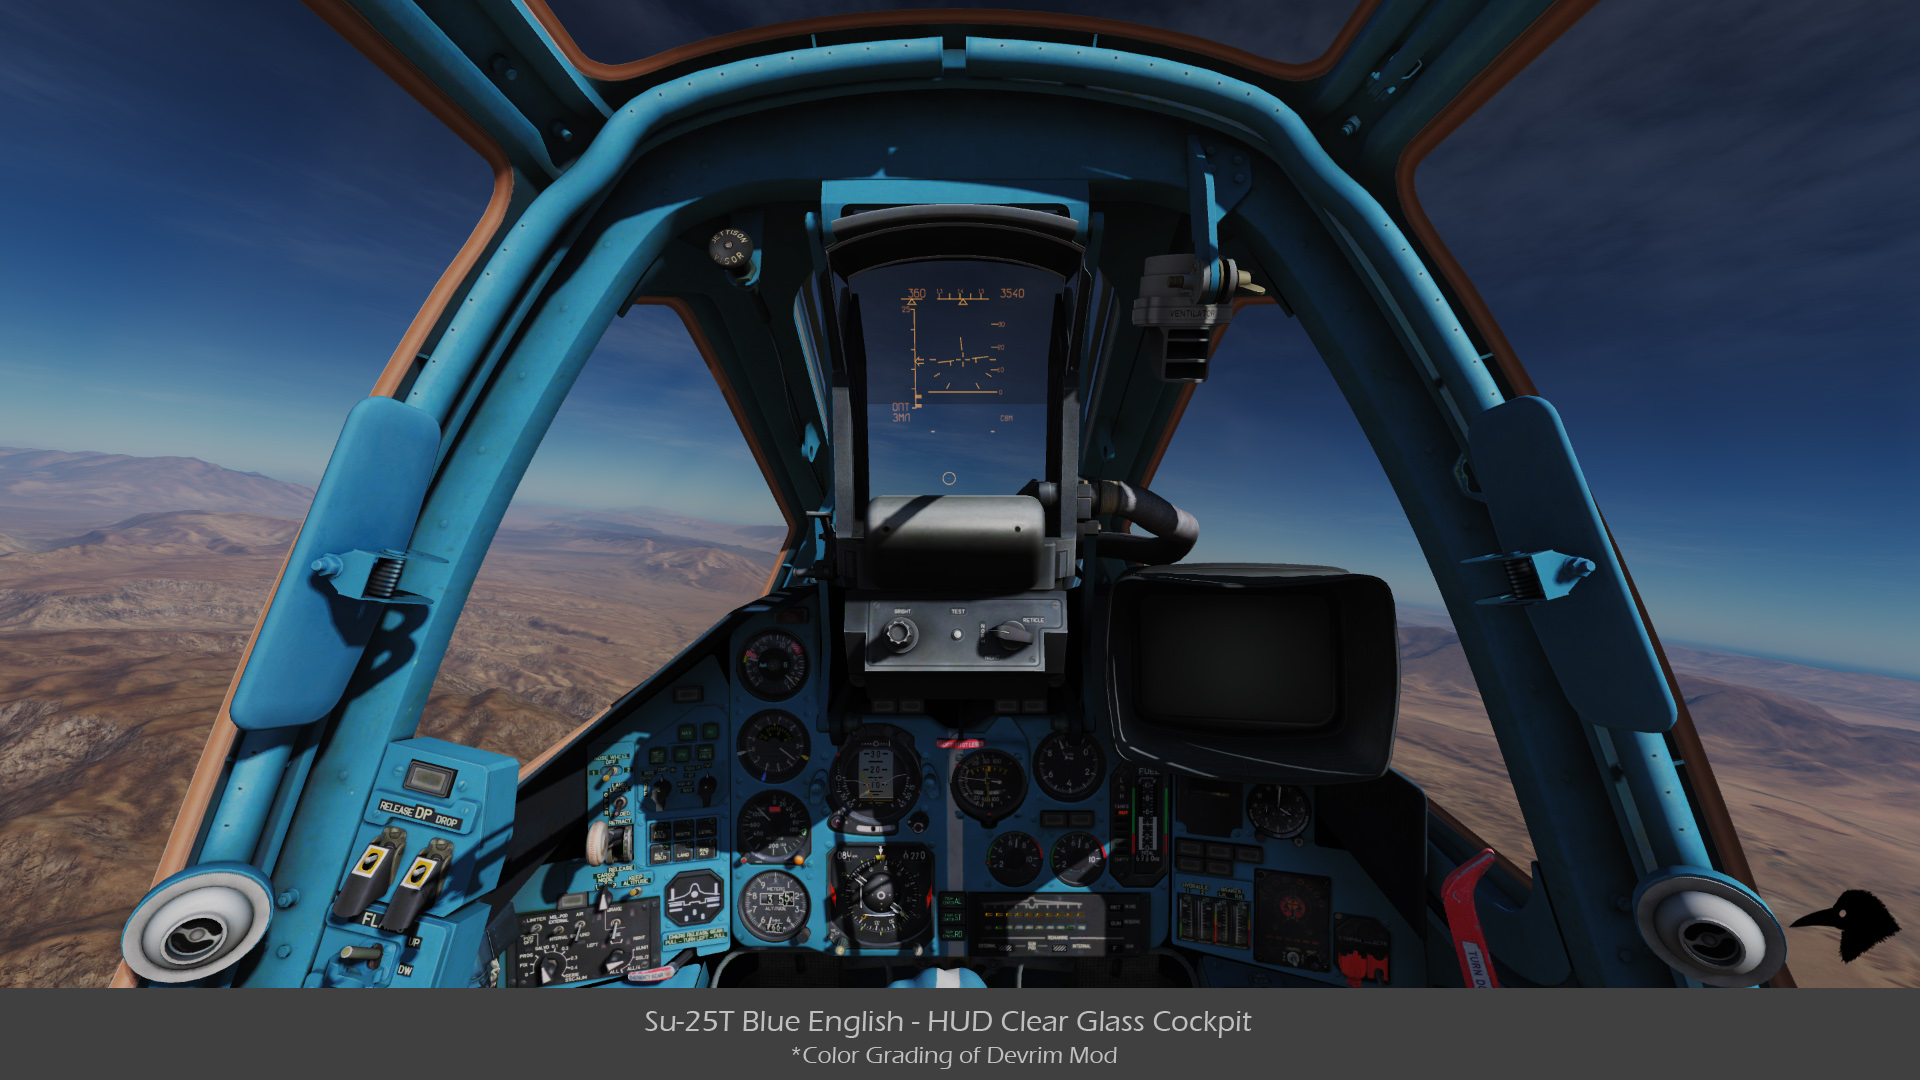 Su-25T Blue English - HUD Clear Glass Cockpit v01